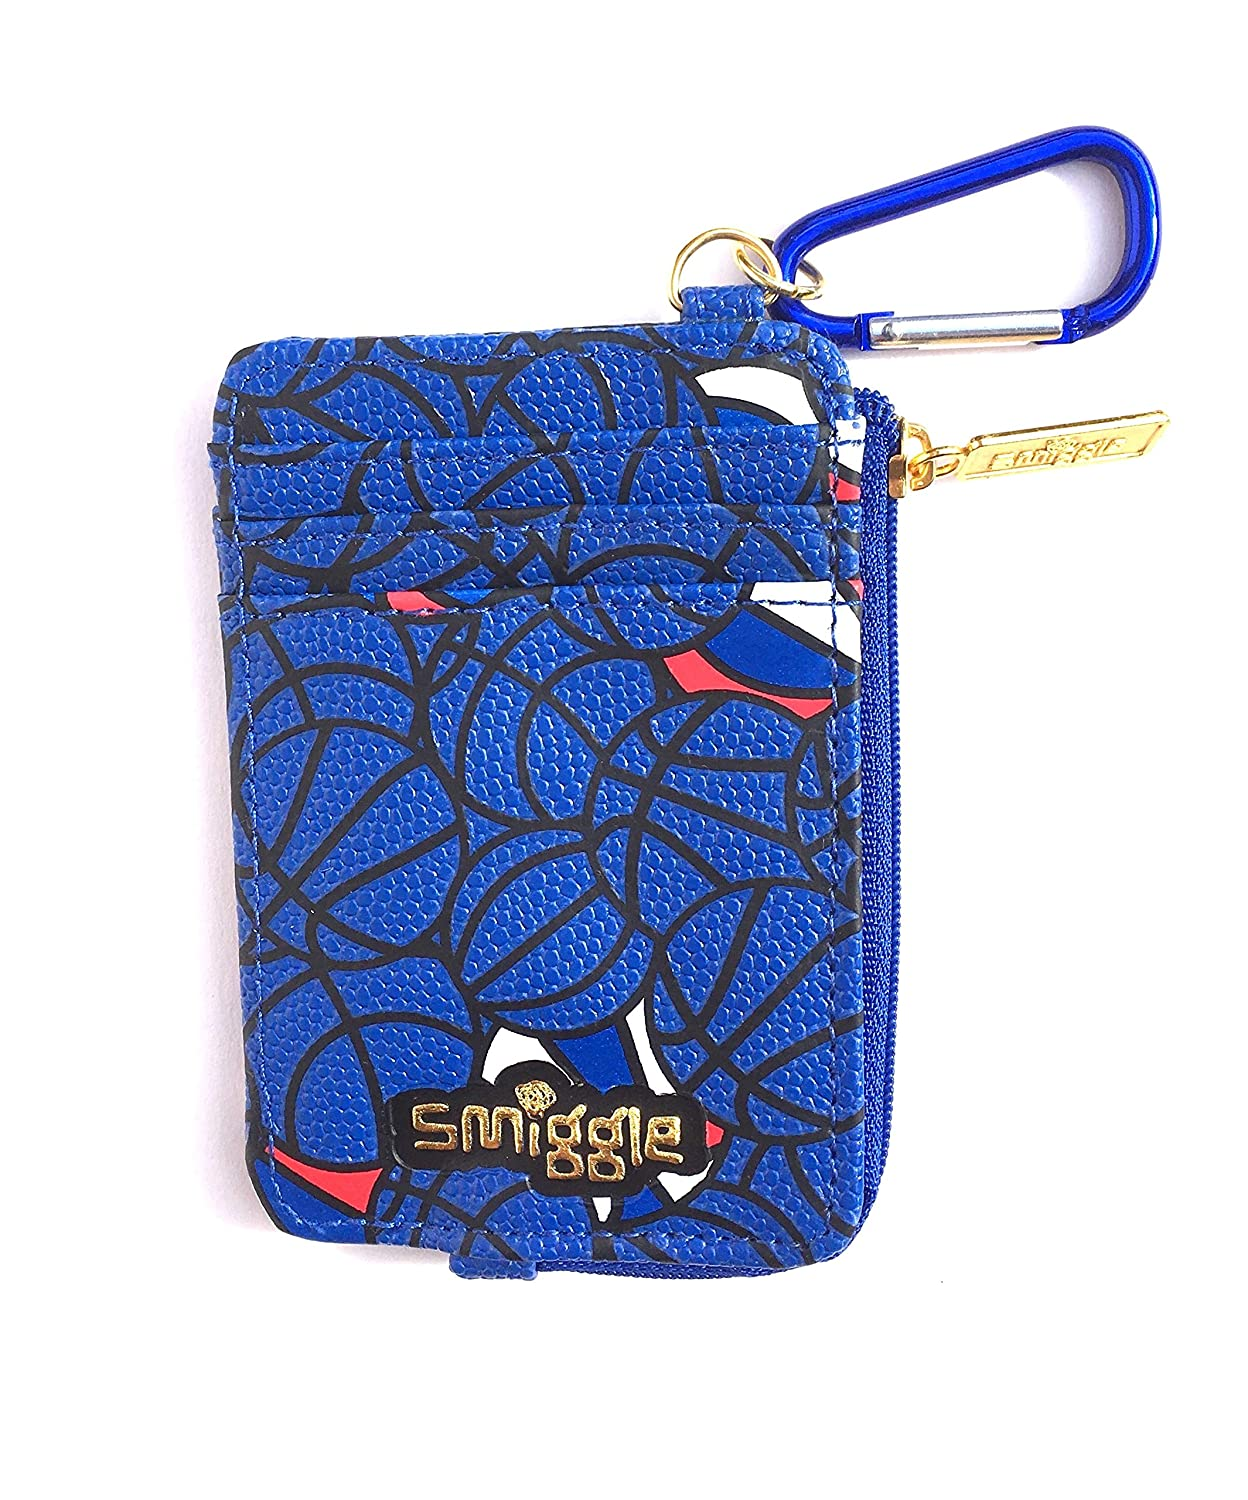 Smiggle Wallet Bball with Carabiner Clip